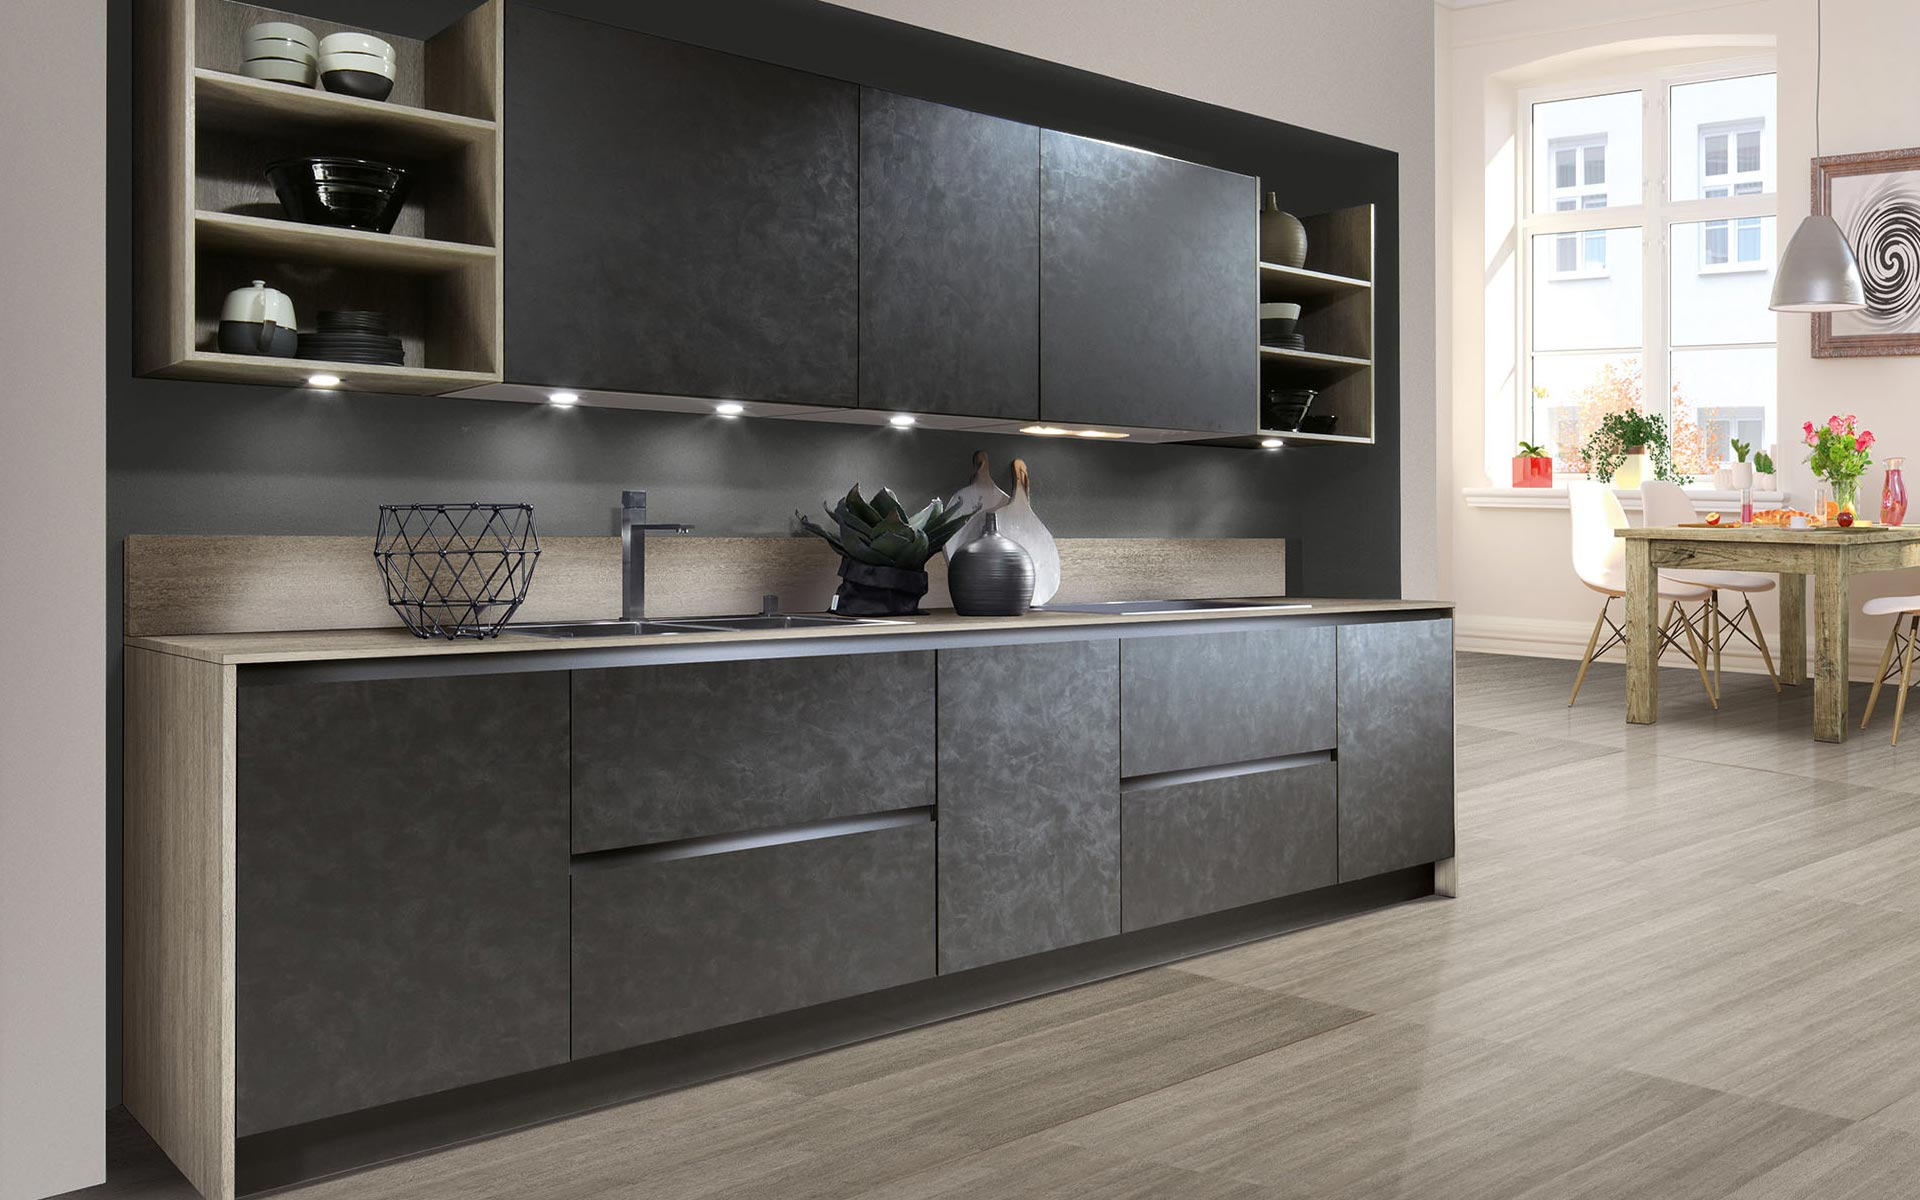 Toronto: Kitchens from Germany, Europe. Cemento Basalt Dunkel